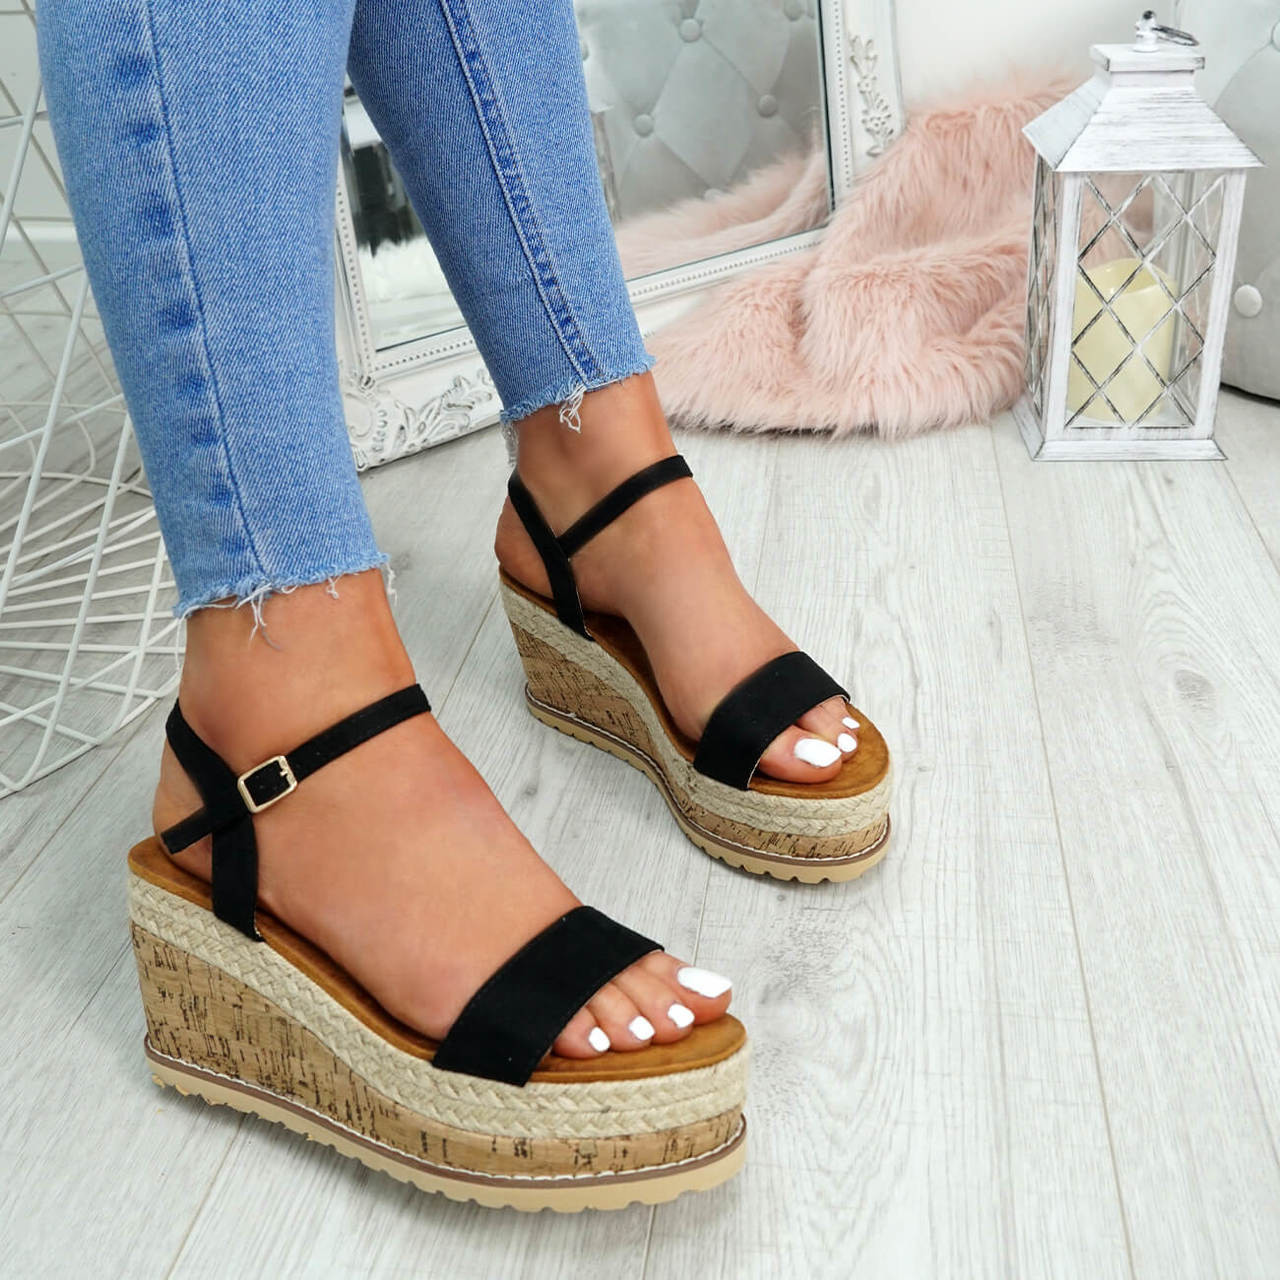 8e036d824c3 Womens Ladies High Heel Platform Sandals Wedge Buckle Peep Toe Shoes Size